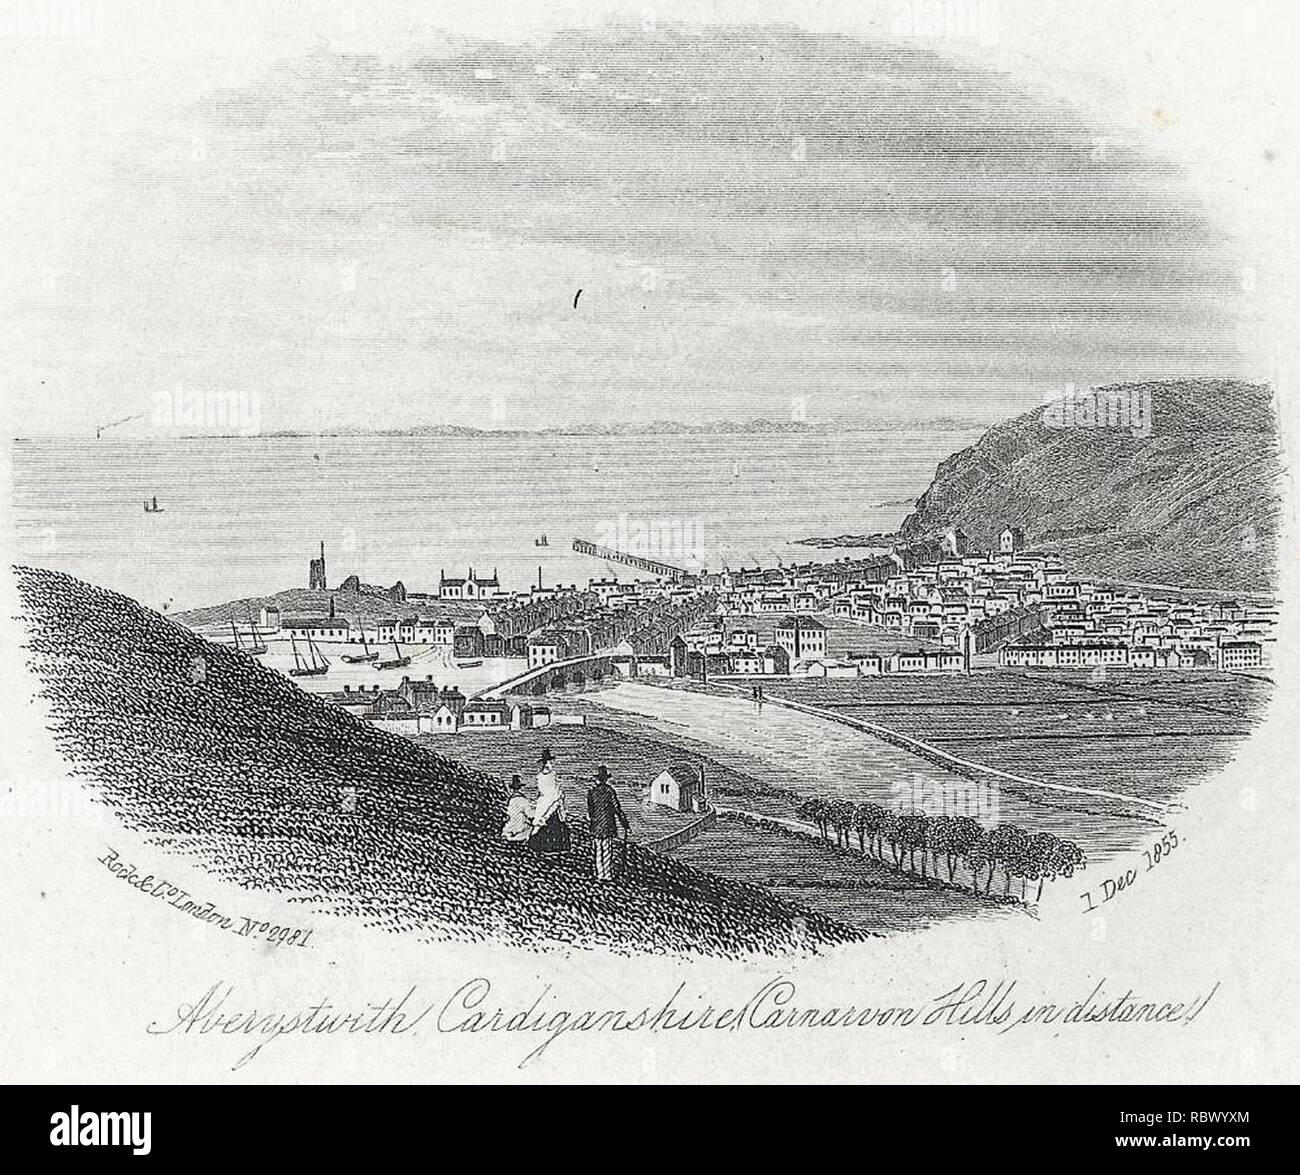 Aberystwith, Cardiganshire (Carnarvon hills in distance) (1132313). - Stock Image